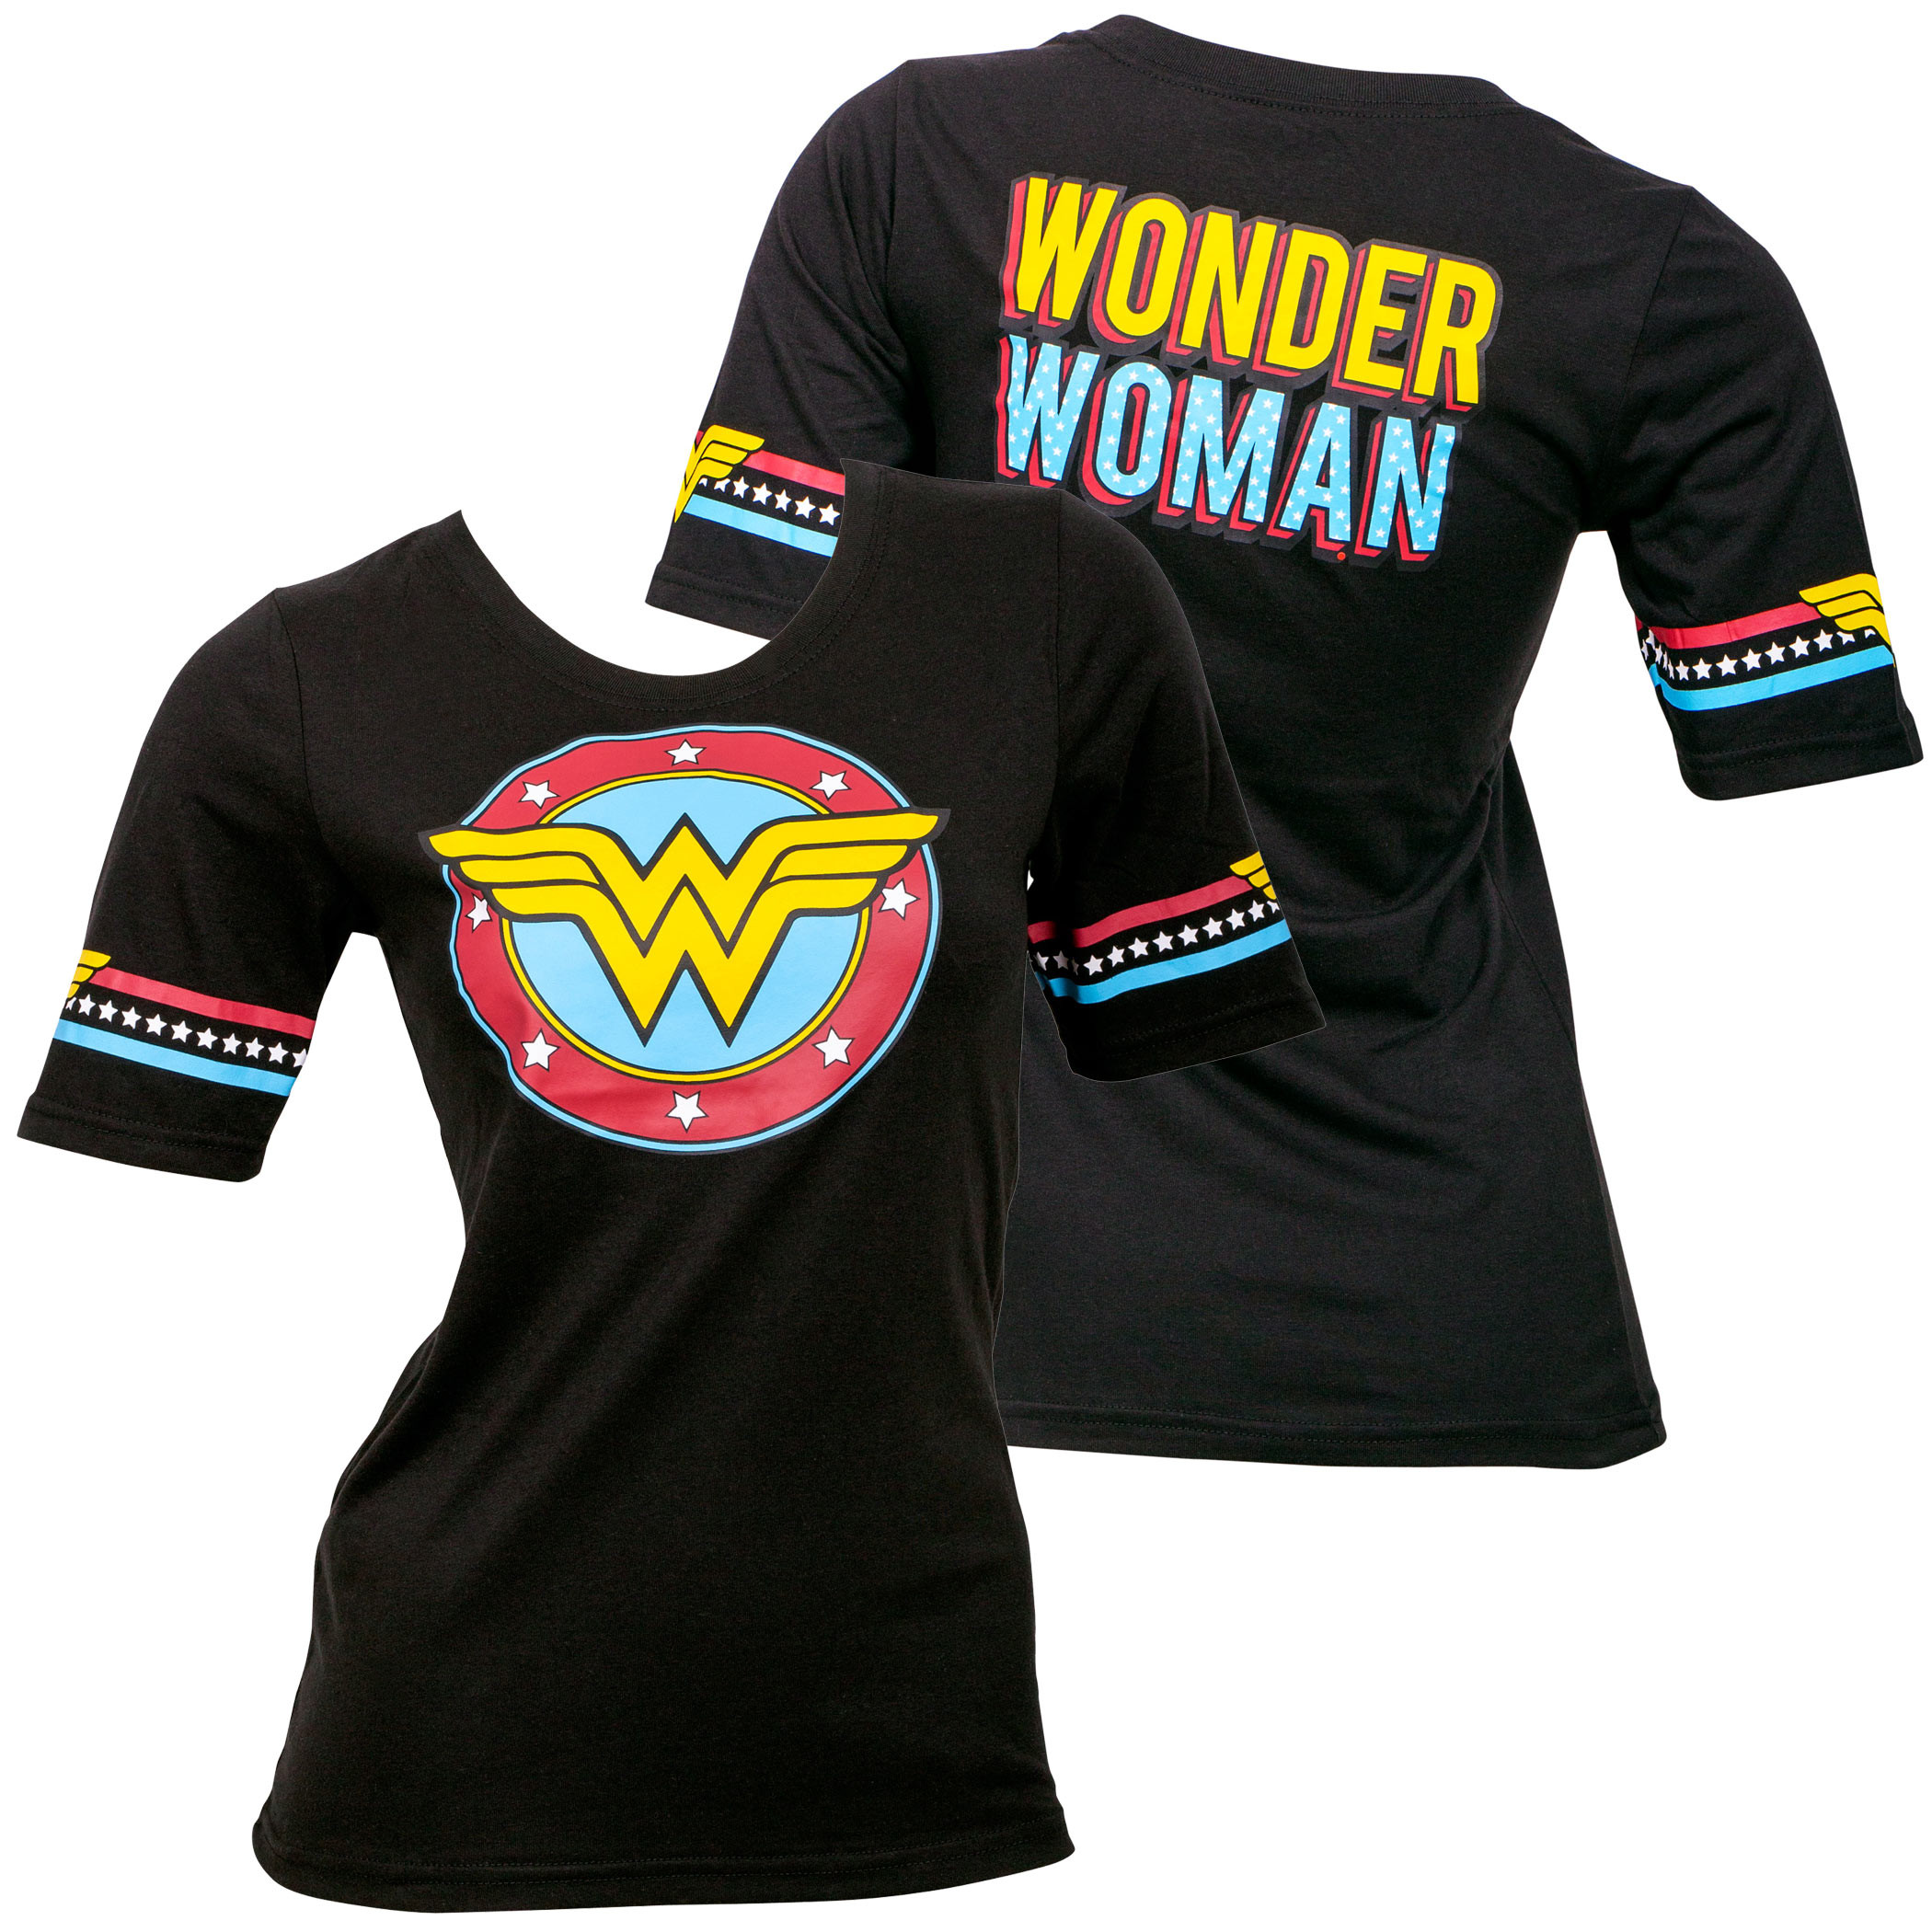 Wonder Woman Star Crest Front and Back Print Women's T-Shirt